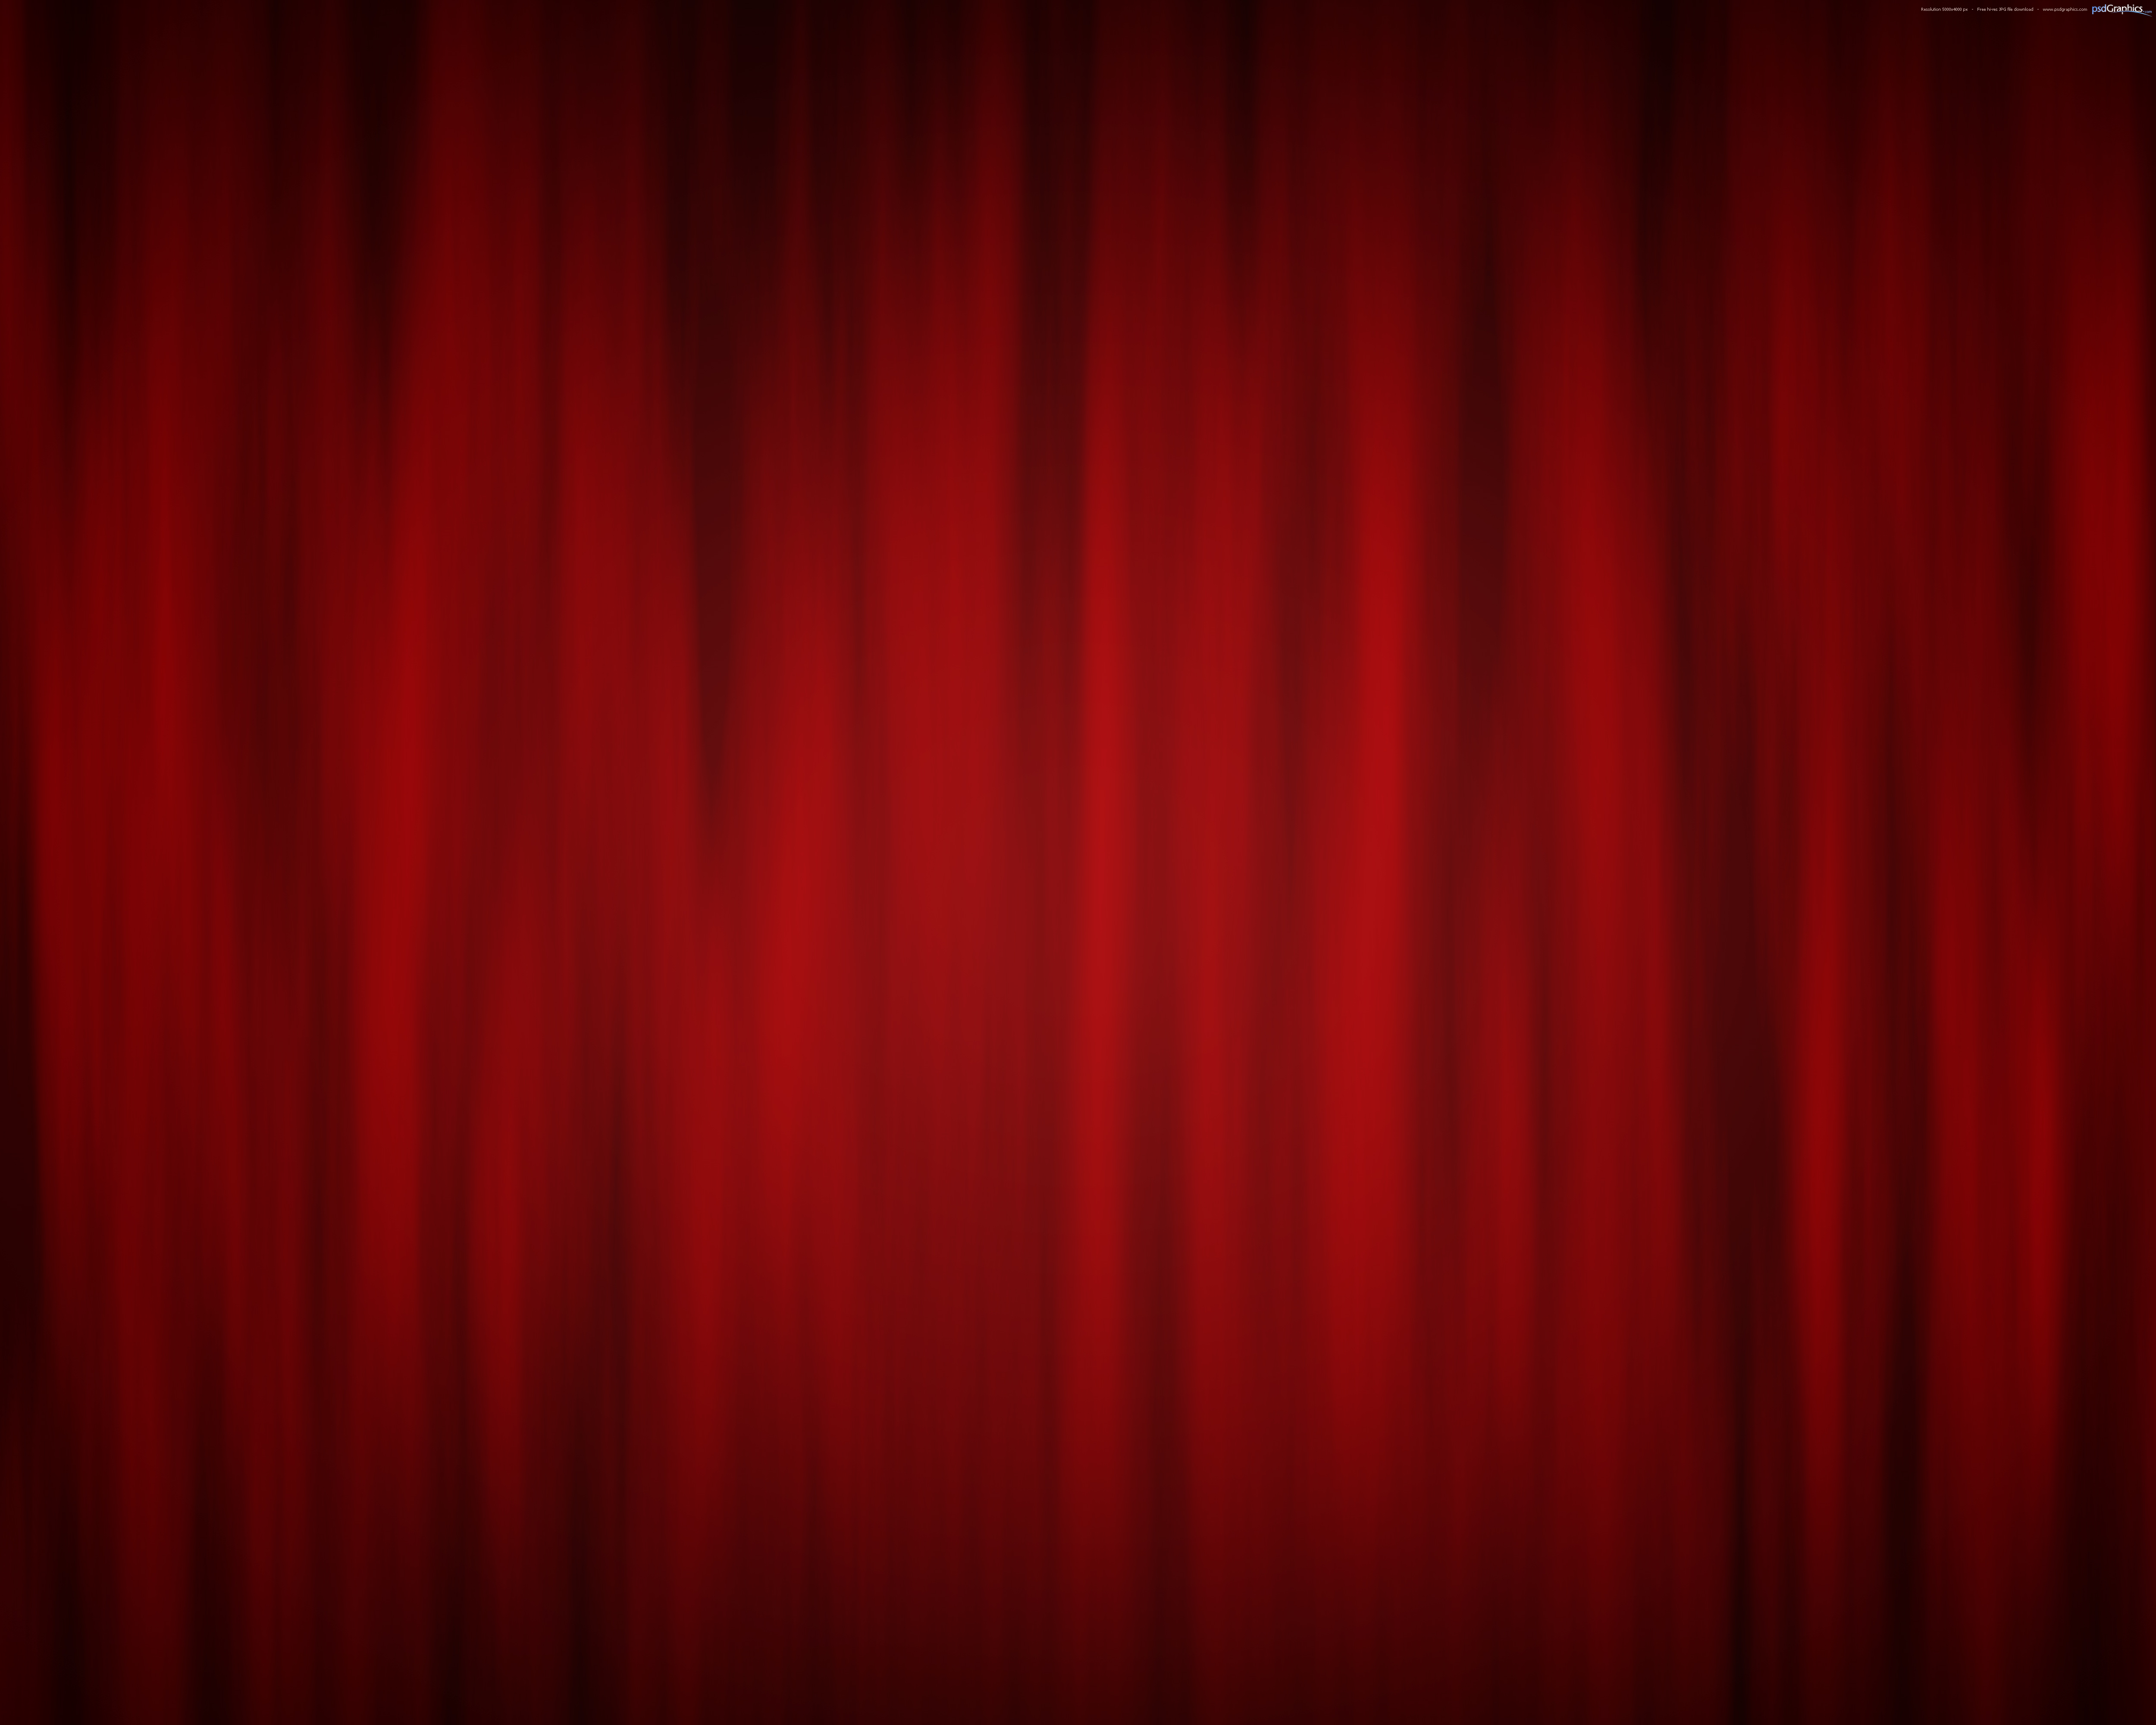 Red curtain design red theater curtains png curtain theater curtains - Theater Wallpaper Backgrounds Wallpapersafari